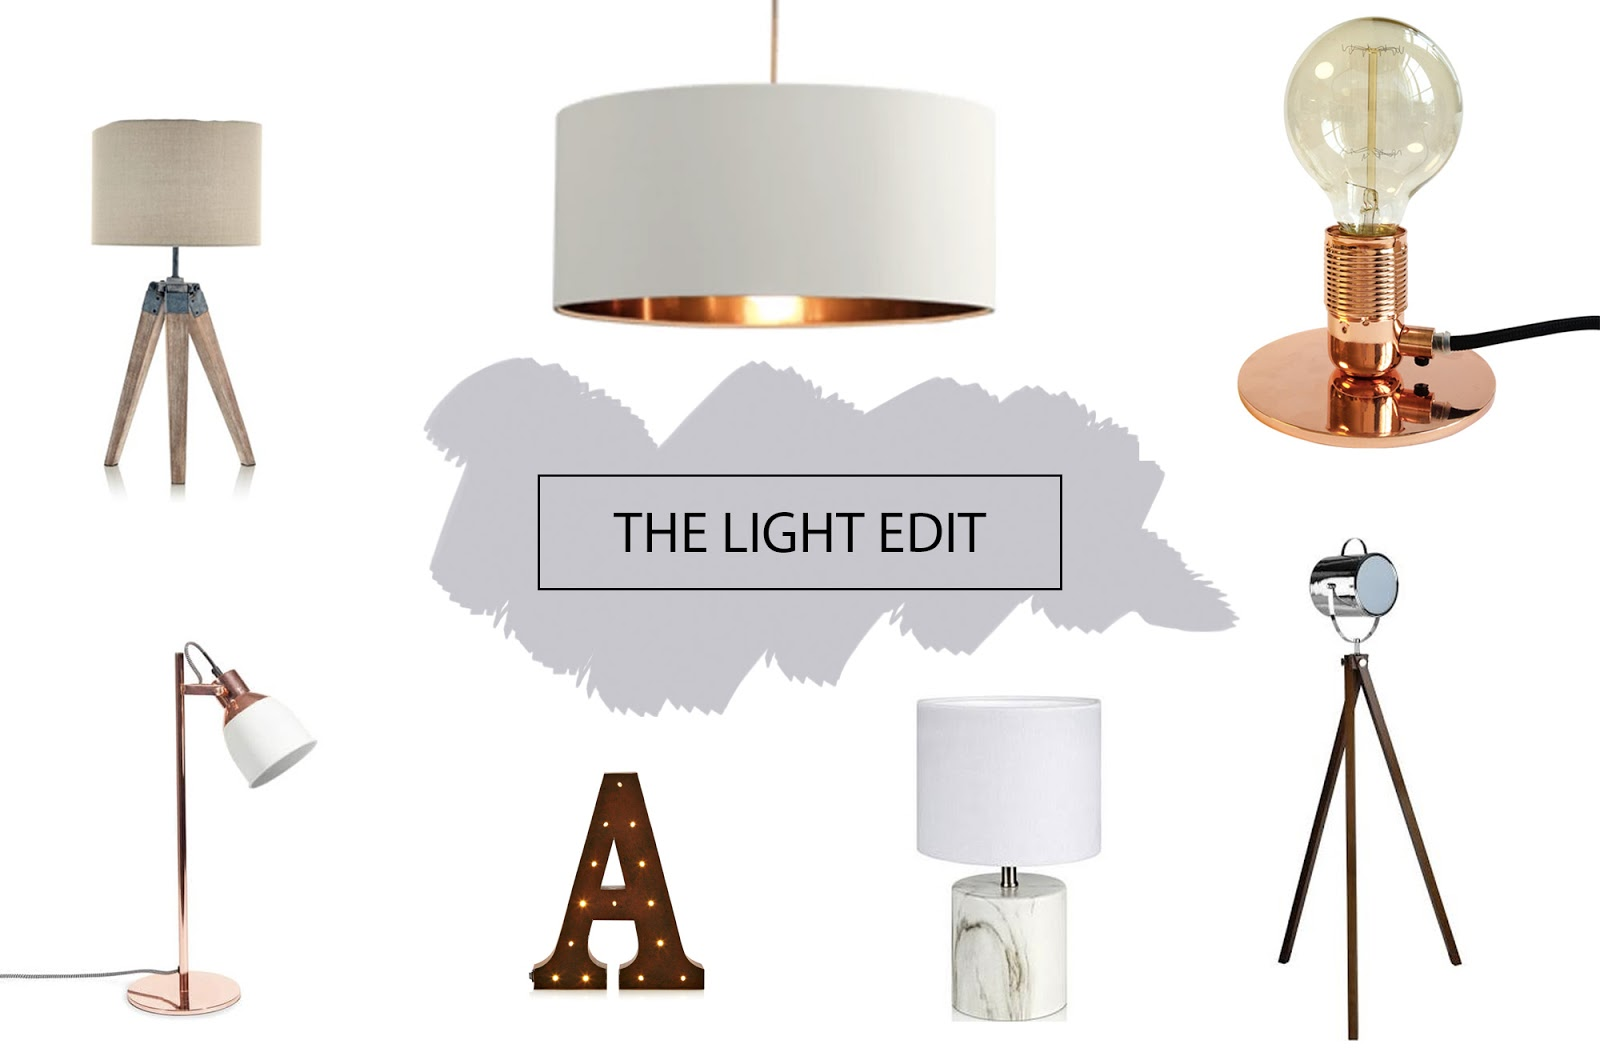 Image of lighting and home accessories